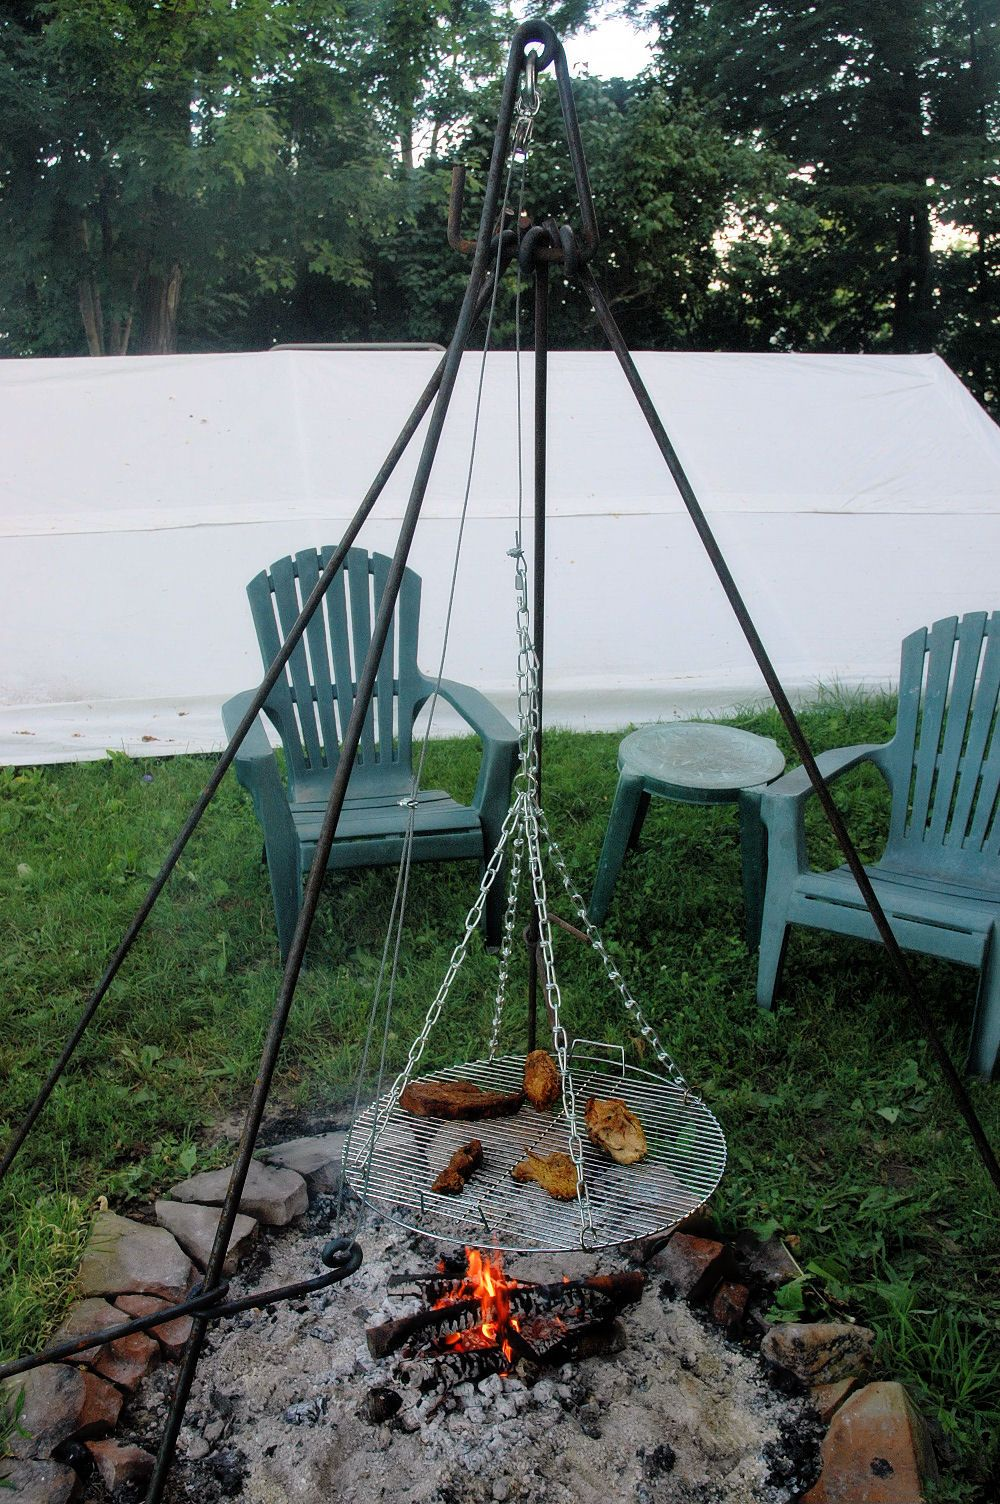 Fire pit cooking   Gardening ideas   Fire pit cooking ...